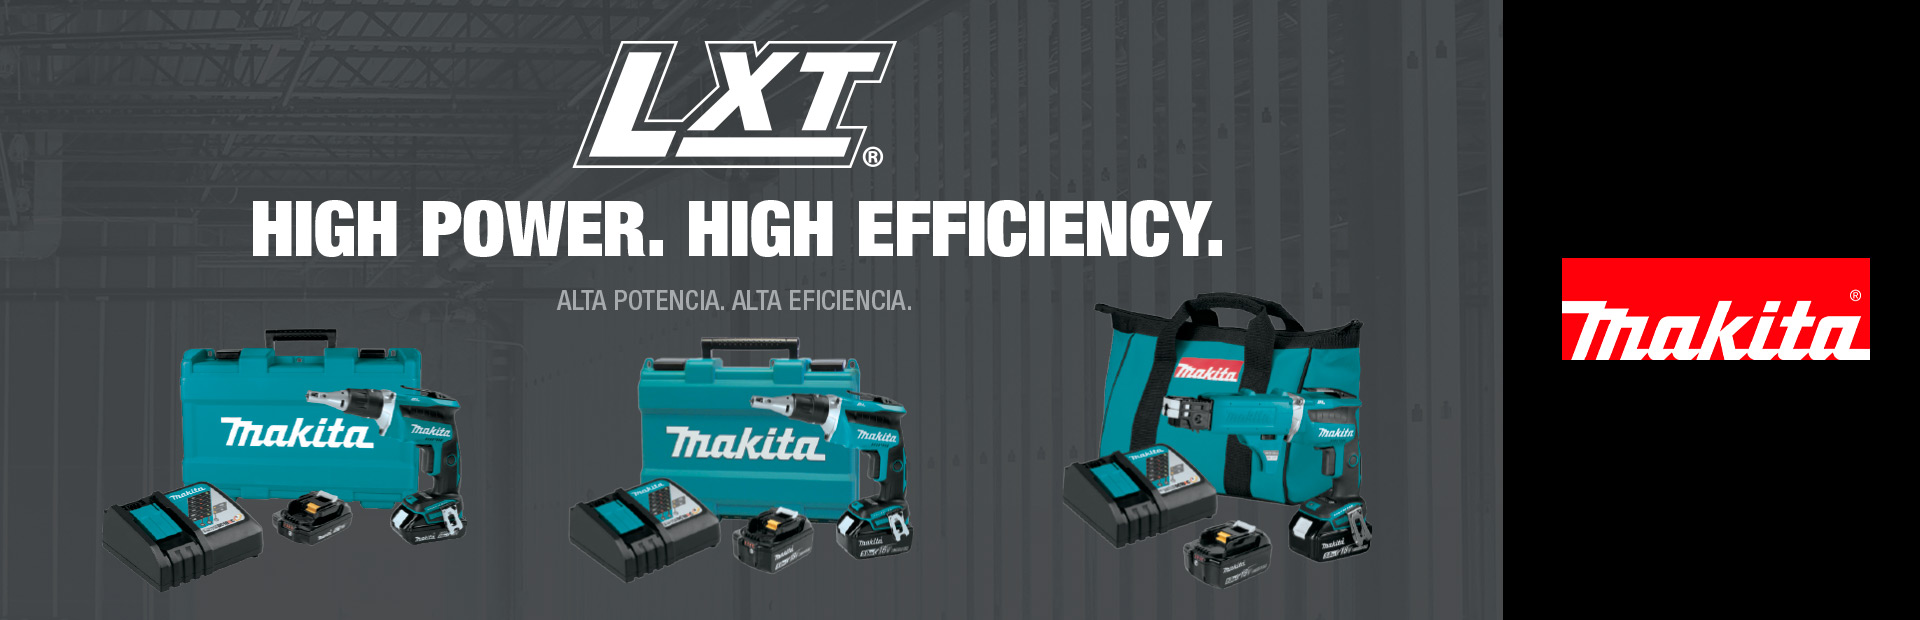 Makita: LXT High Power High Efficiency